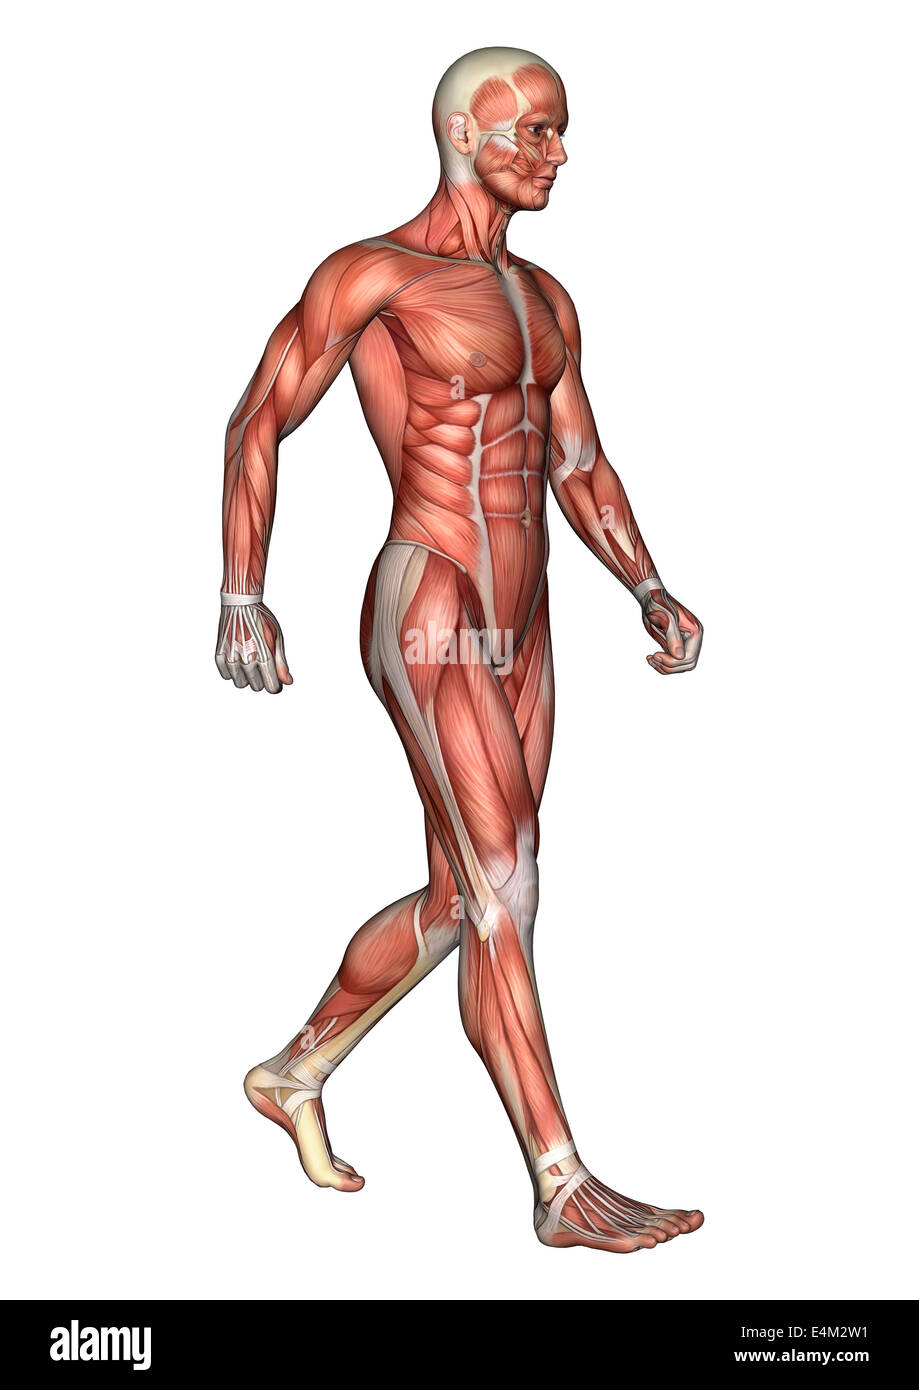 3d Digital Render Of A Walking Male Anatomy Figure With Muscles Map